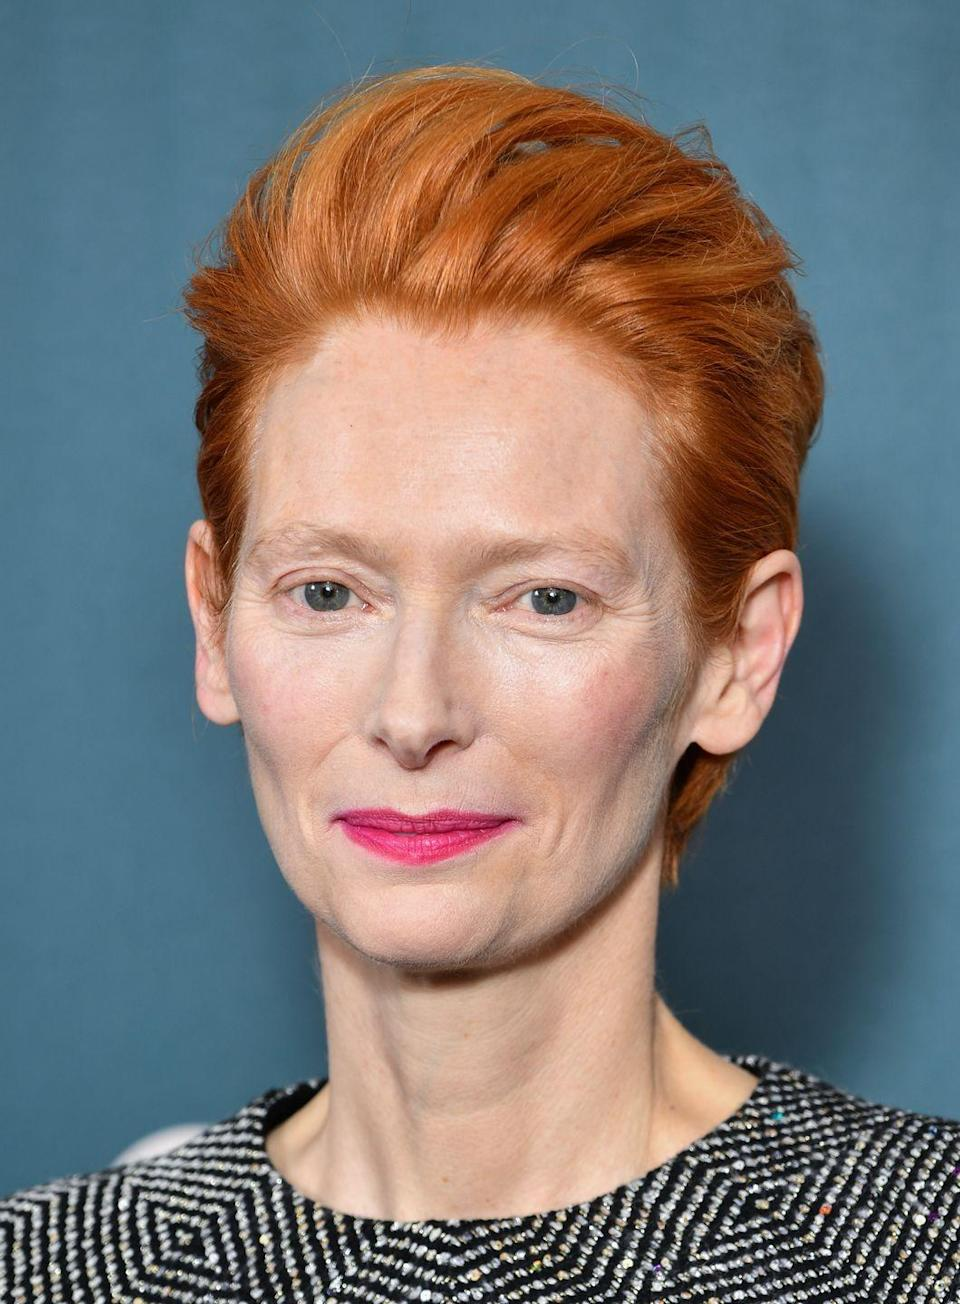 <p>Go bright and bold Tilda Swinton style with a zingy, block copper shade.</p>